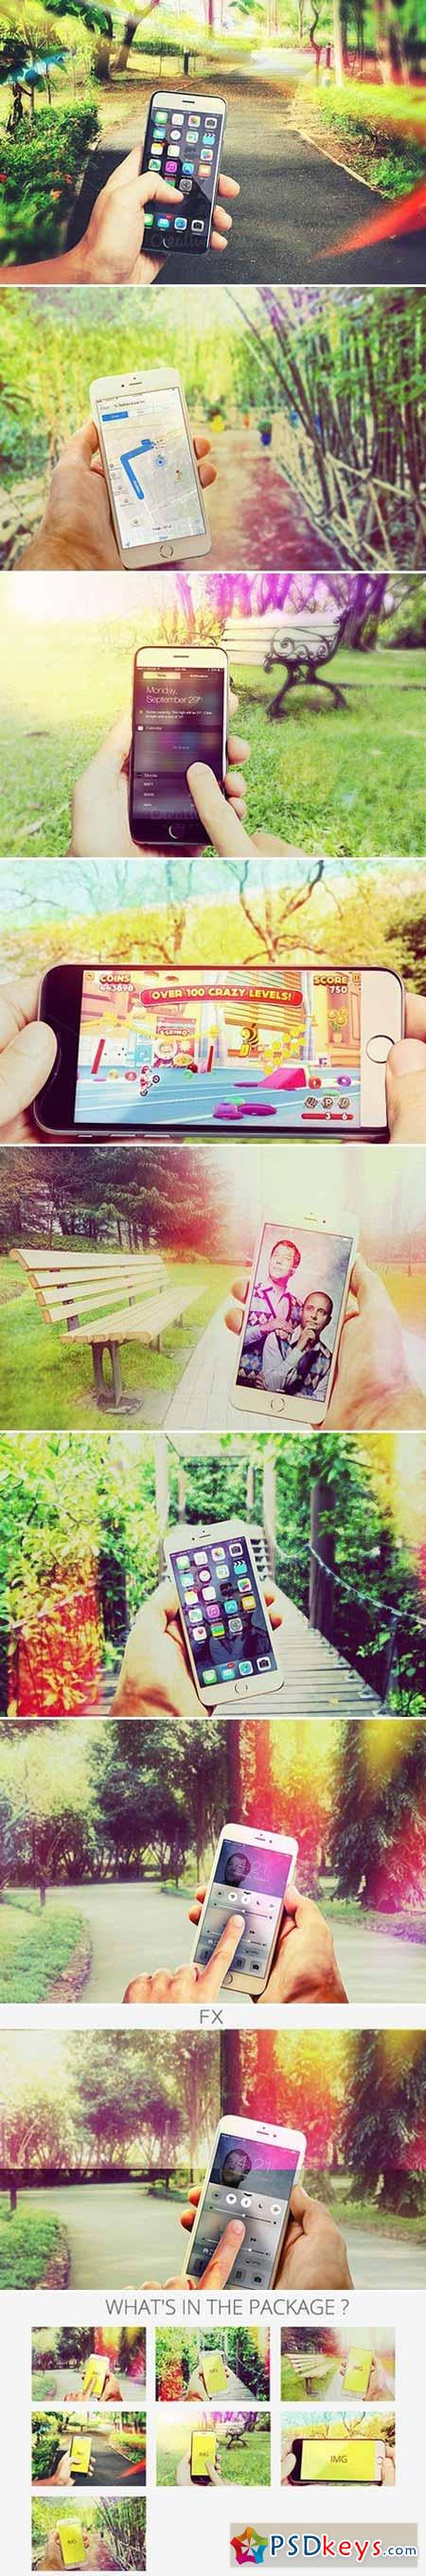 Photorealistic Phone 6 App Mock-Up 452464